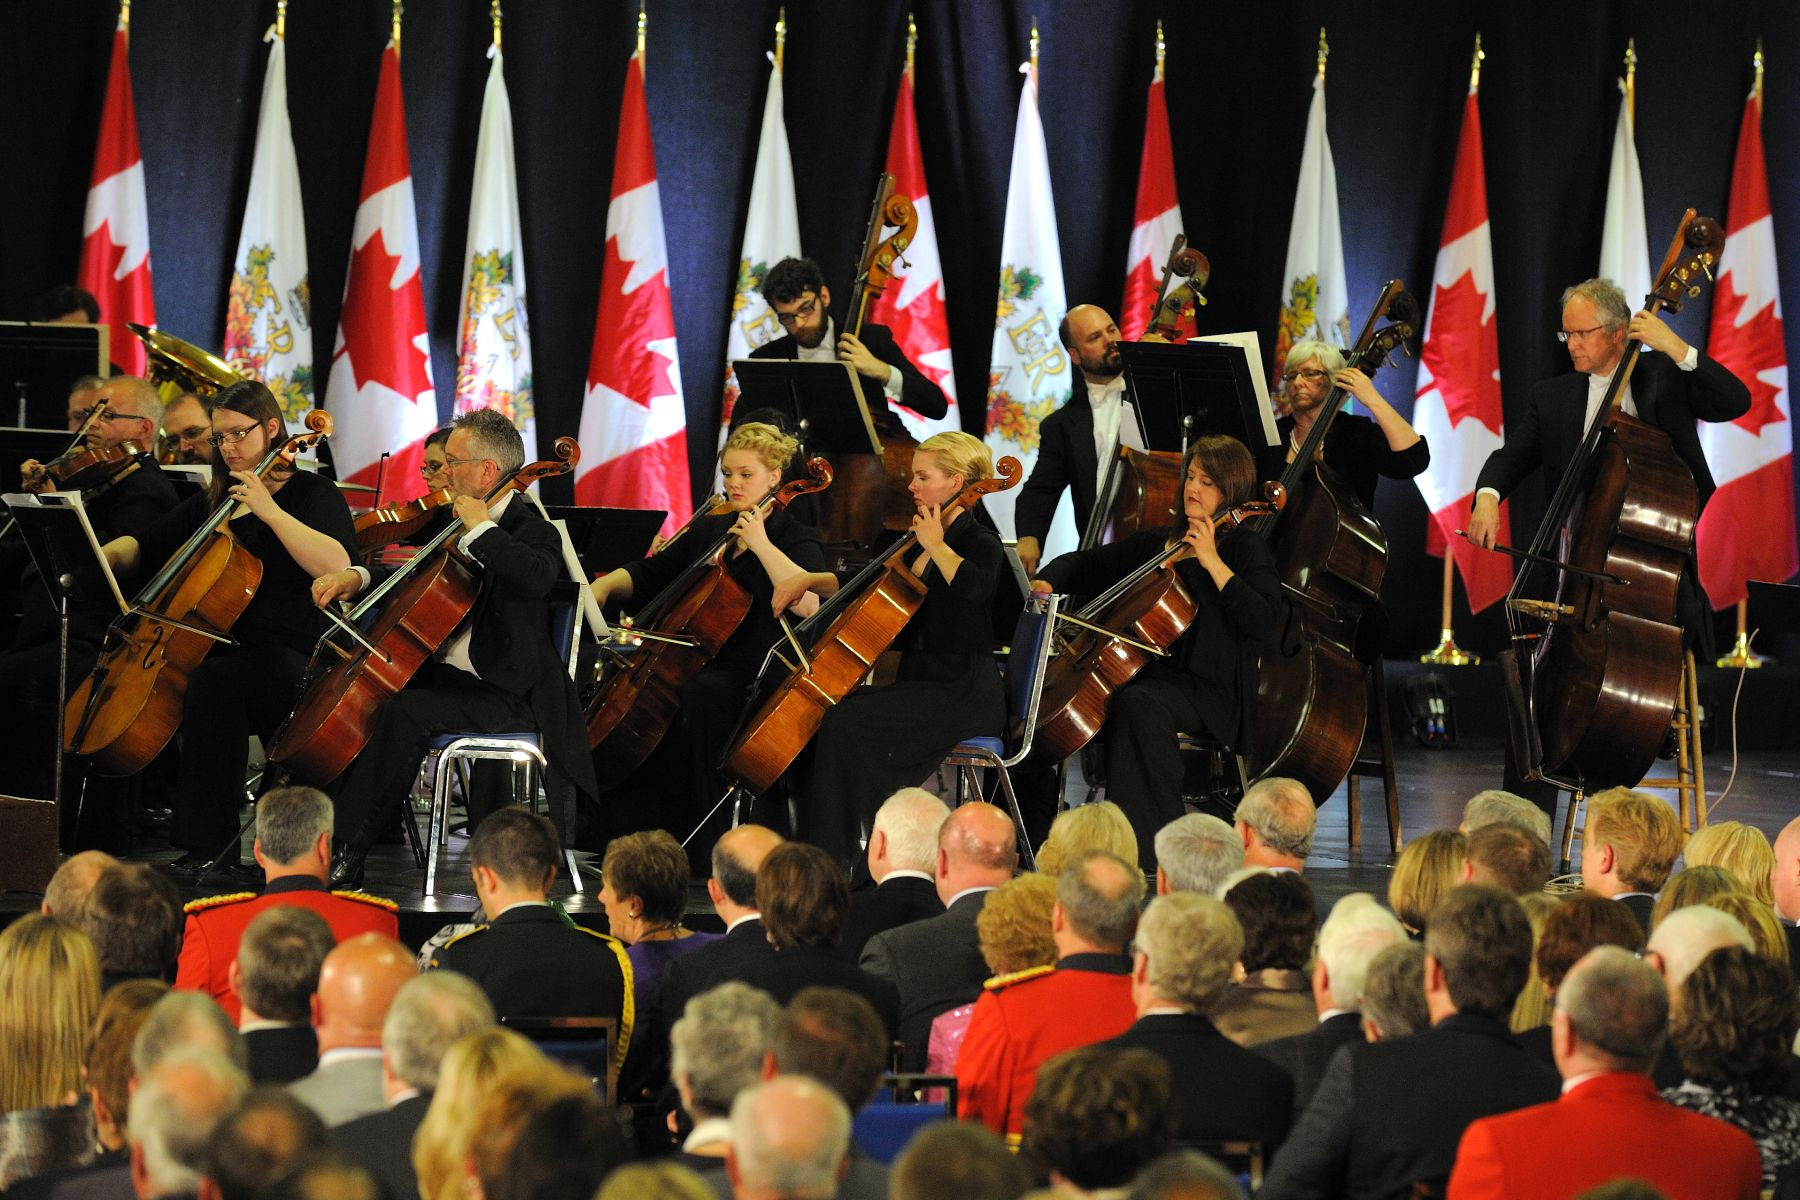 The Diamond Jubilee Concert hosted by the Government of Canada consisted of a performance by the Regina Symphony Orchestra.